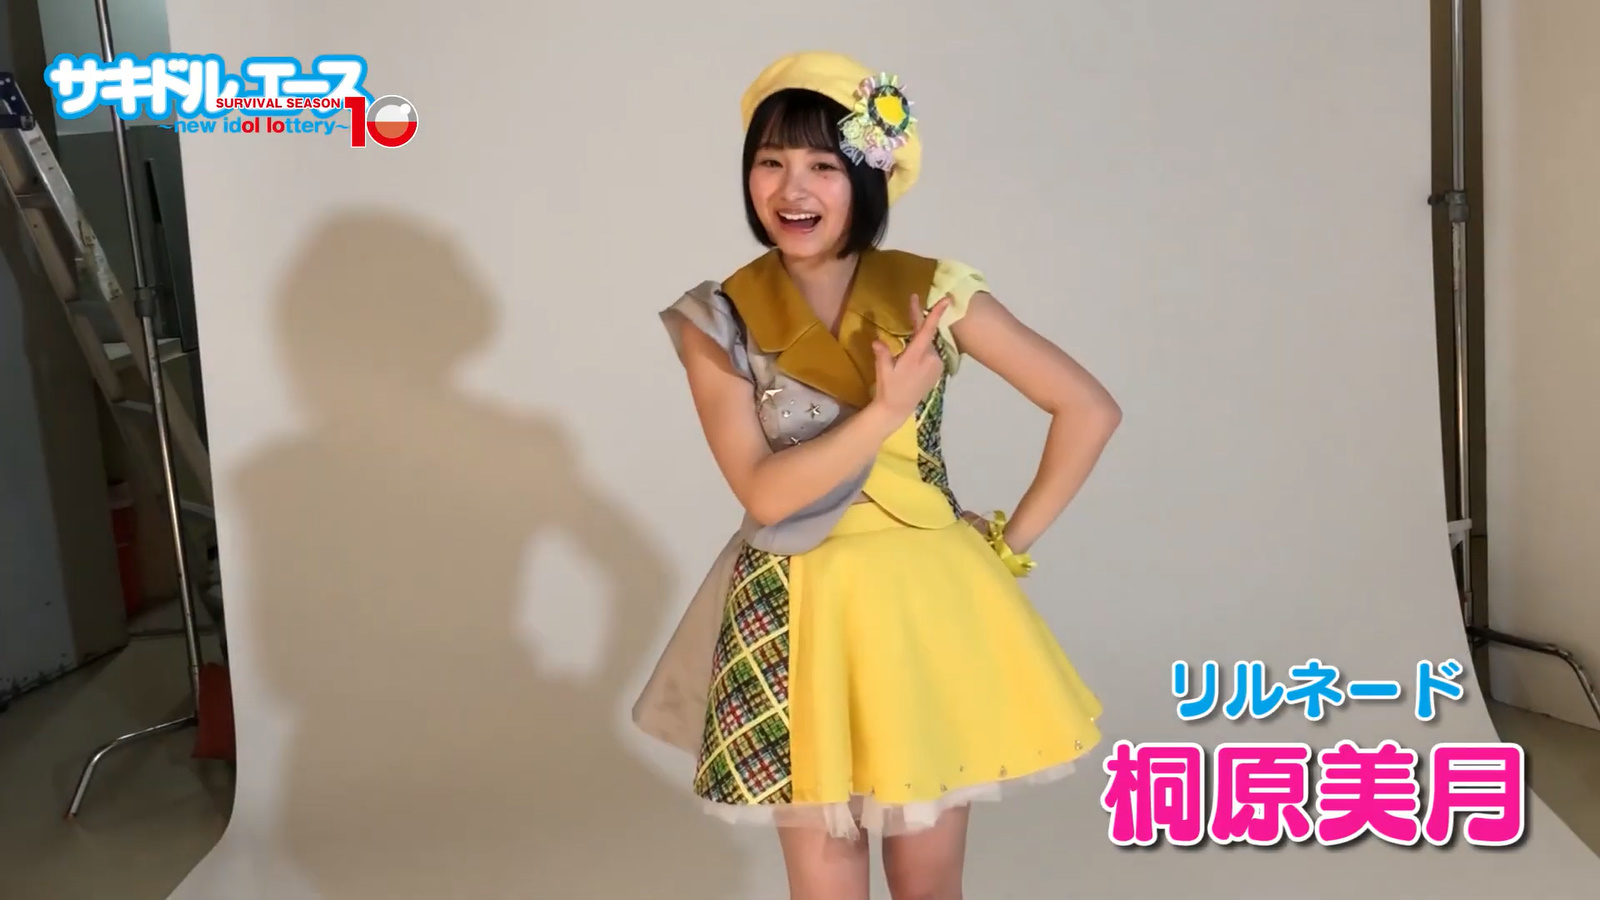 Sakidol Ace 10 Introduction Movie Capture of Swimsuit084